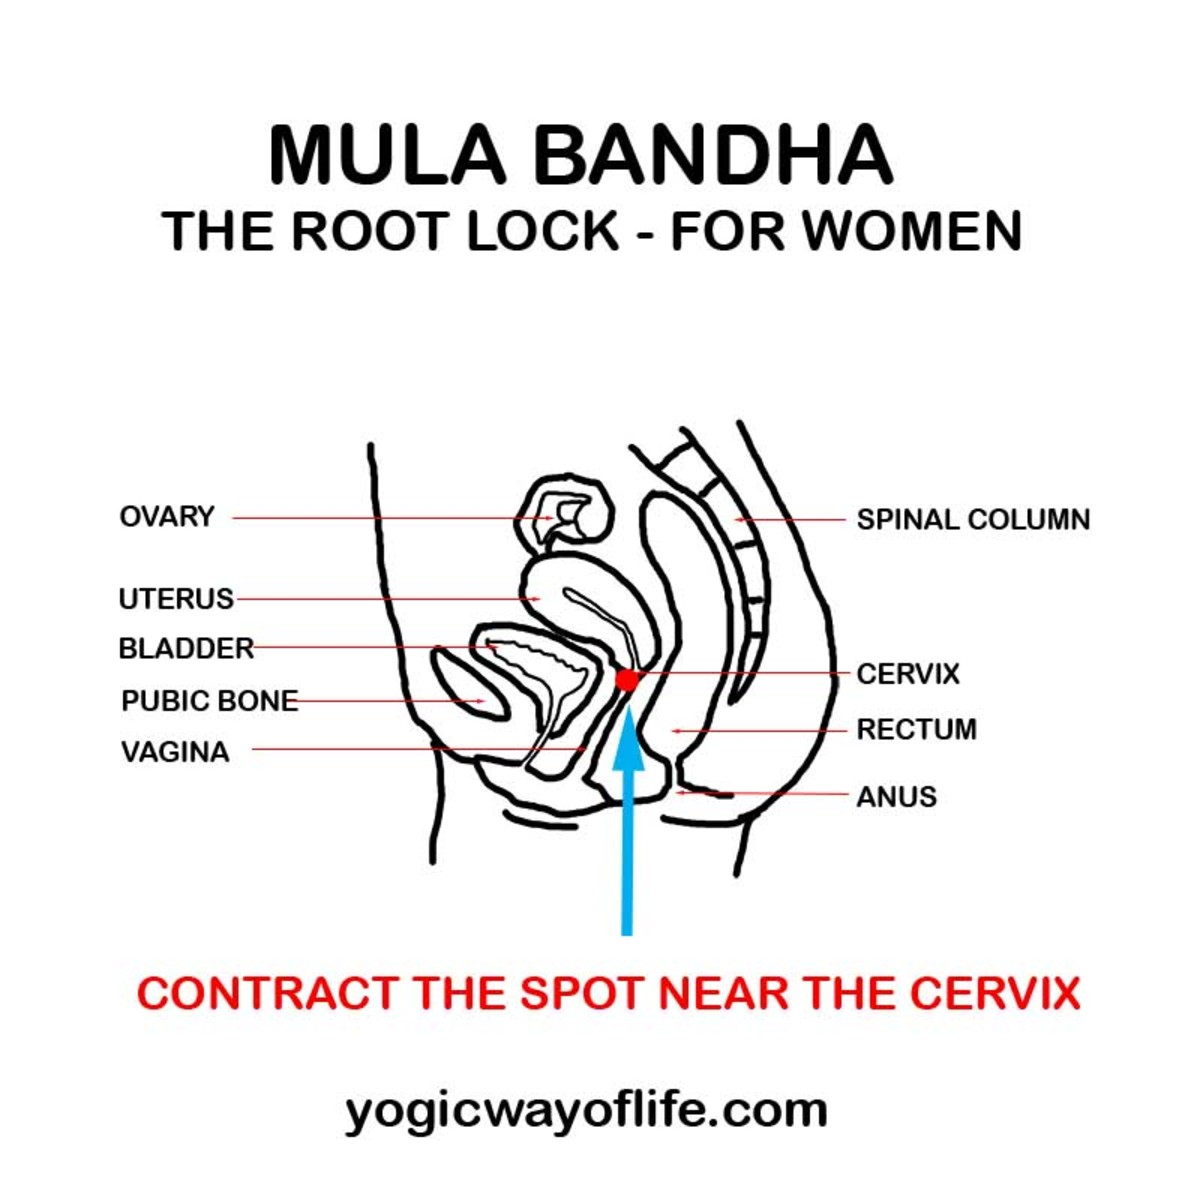 Mula Bandha contraction in women